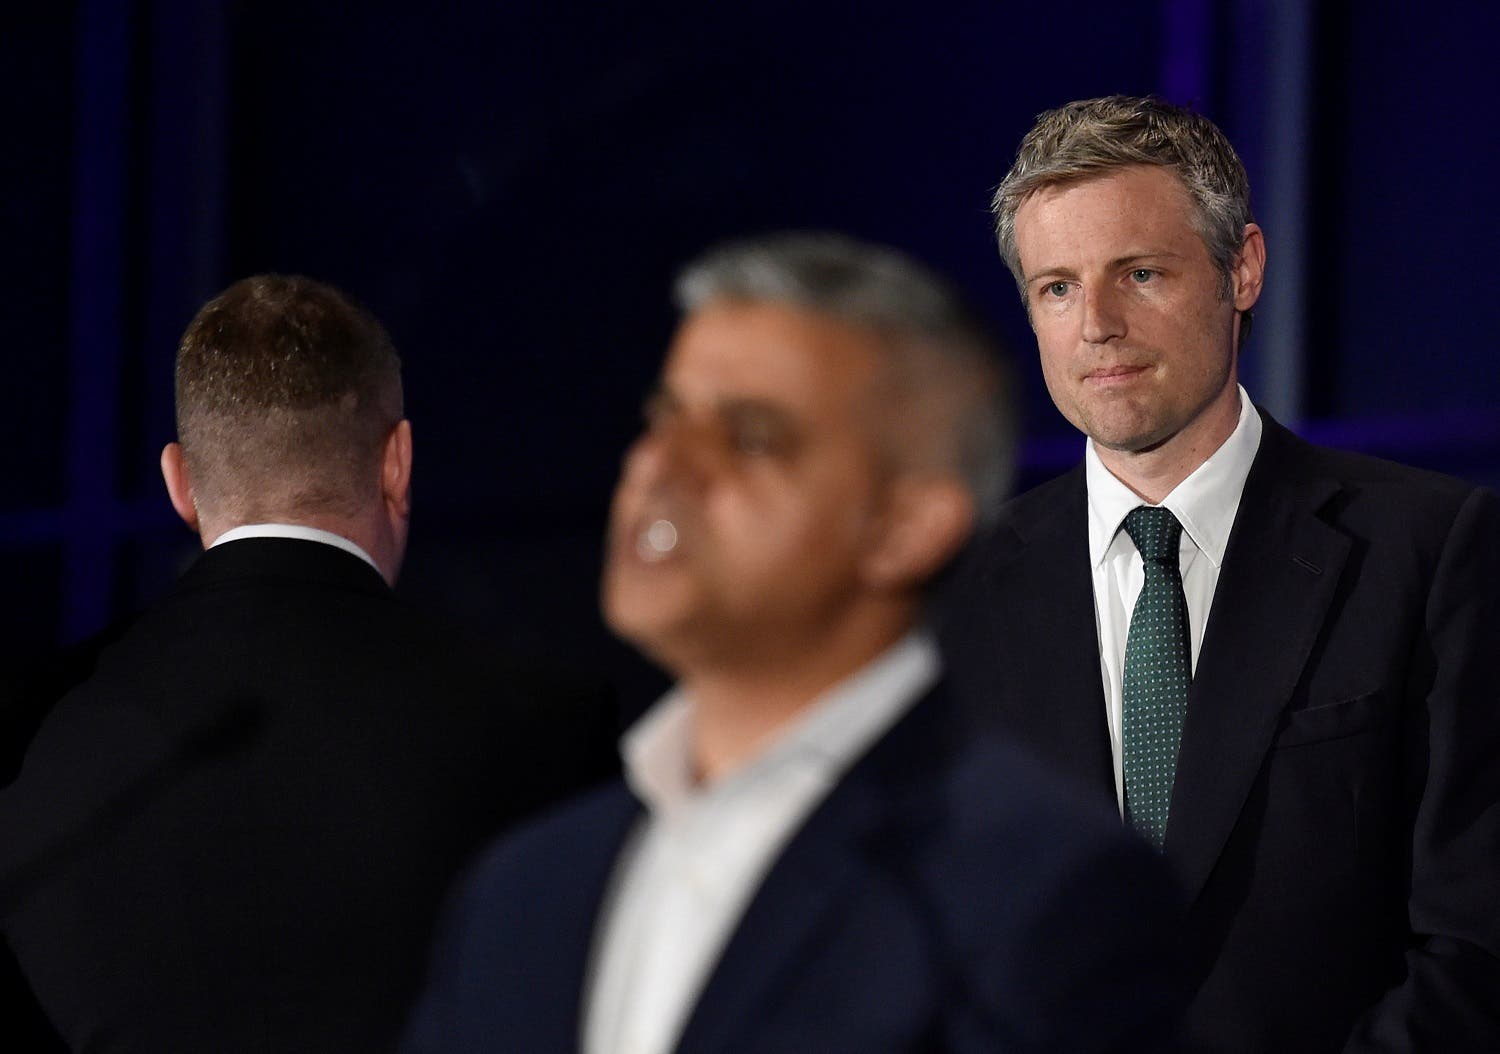 Zac Goldsmith, Britain's Conservative Party candidate for Mayor of London (R) and Paul Golding, Mayor of London candidate for Britain First (L), react as Britain's Labour Party candidate for Mayor of London Sadiq Khan speaks following his victory in the London mayoral election at City Hall in London, Britain, May 7, 2016. REUTERS/Toby Melville